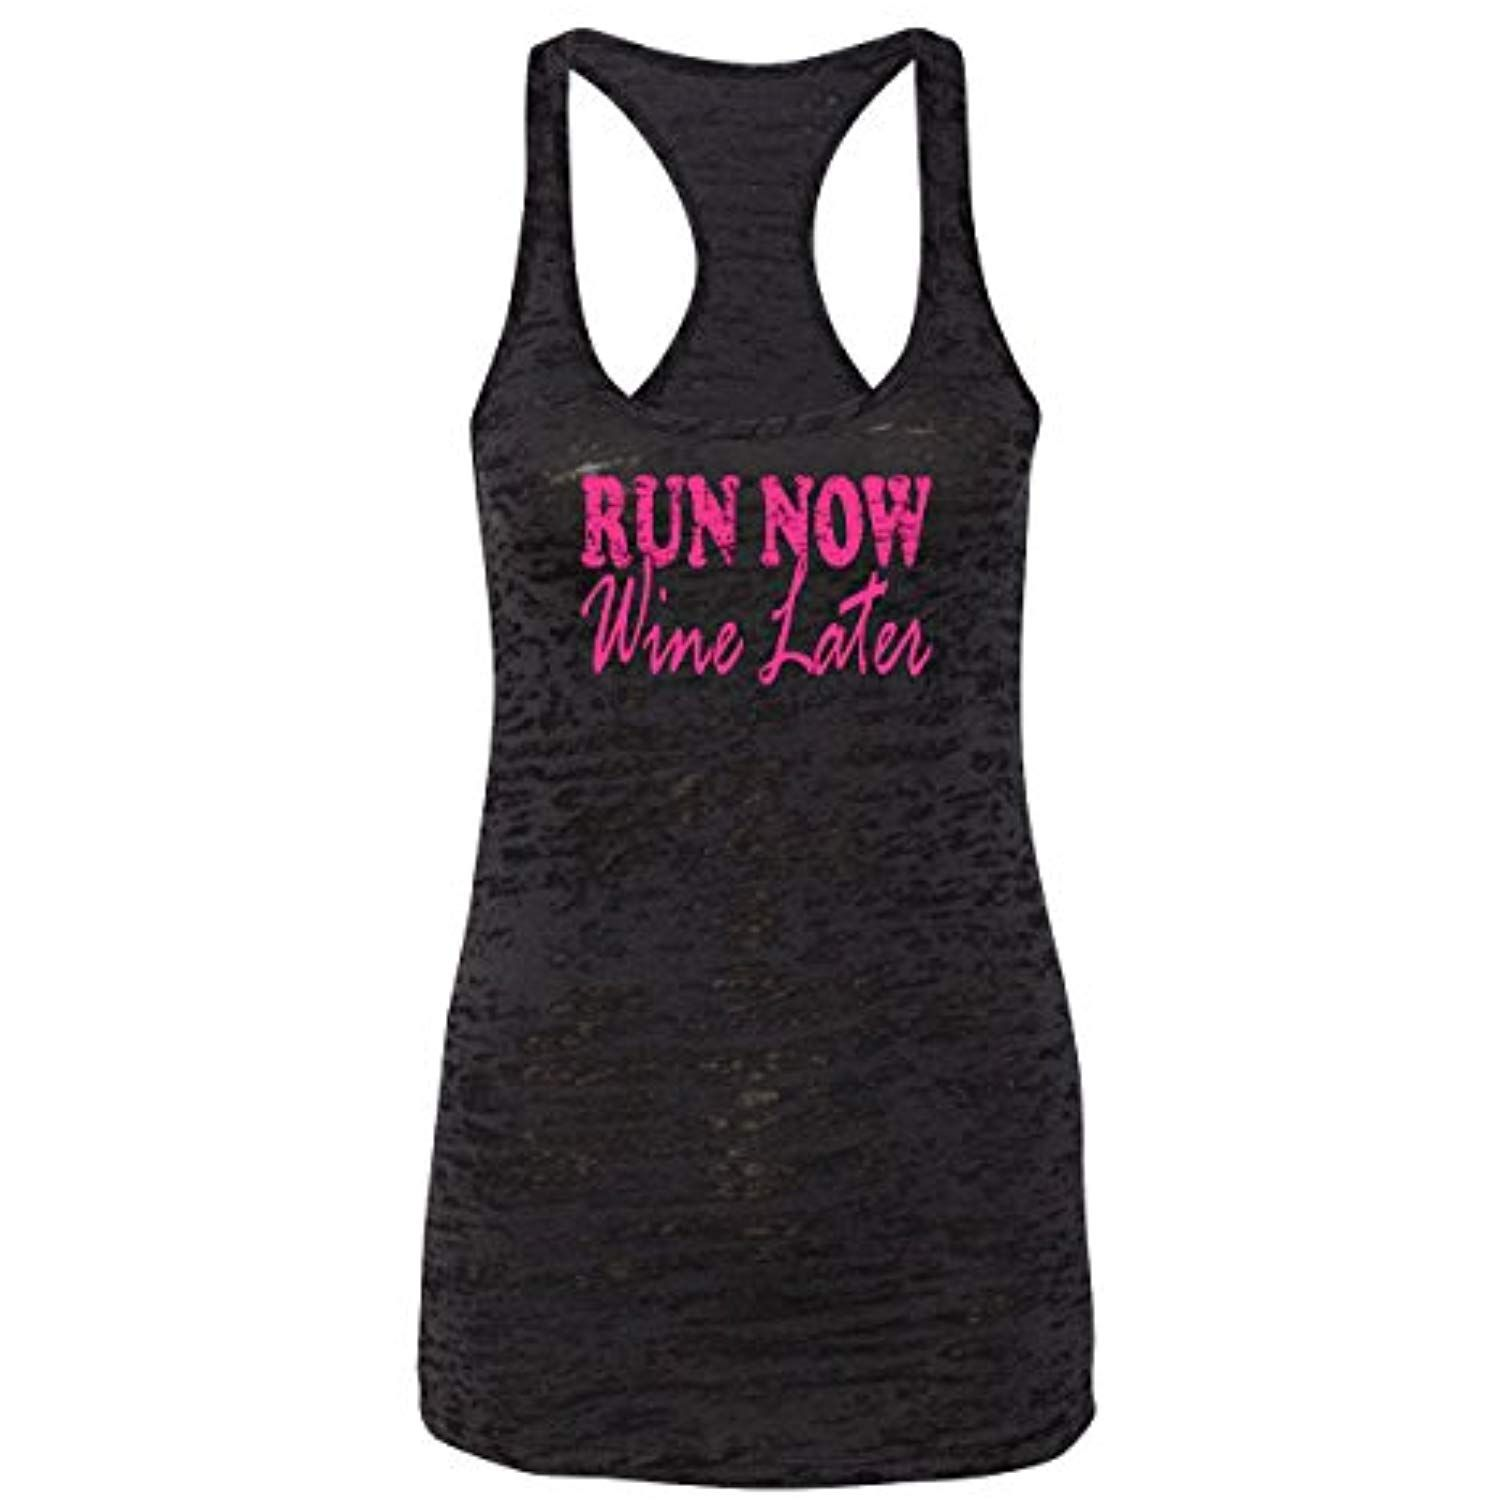 f1006e1ad142a Orange Arrow Womens Workout Tanks - Run Now Wine Later - Crossfit Clothes  by Echona Apparel    Learn more by visiting the image link.